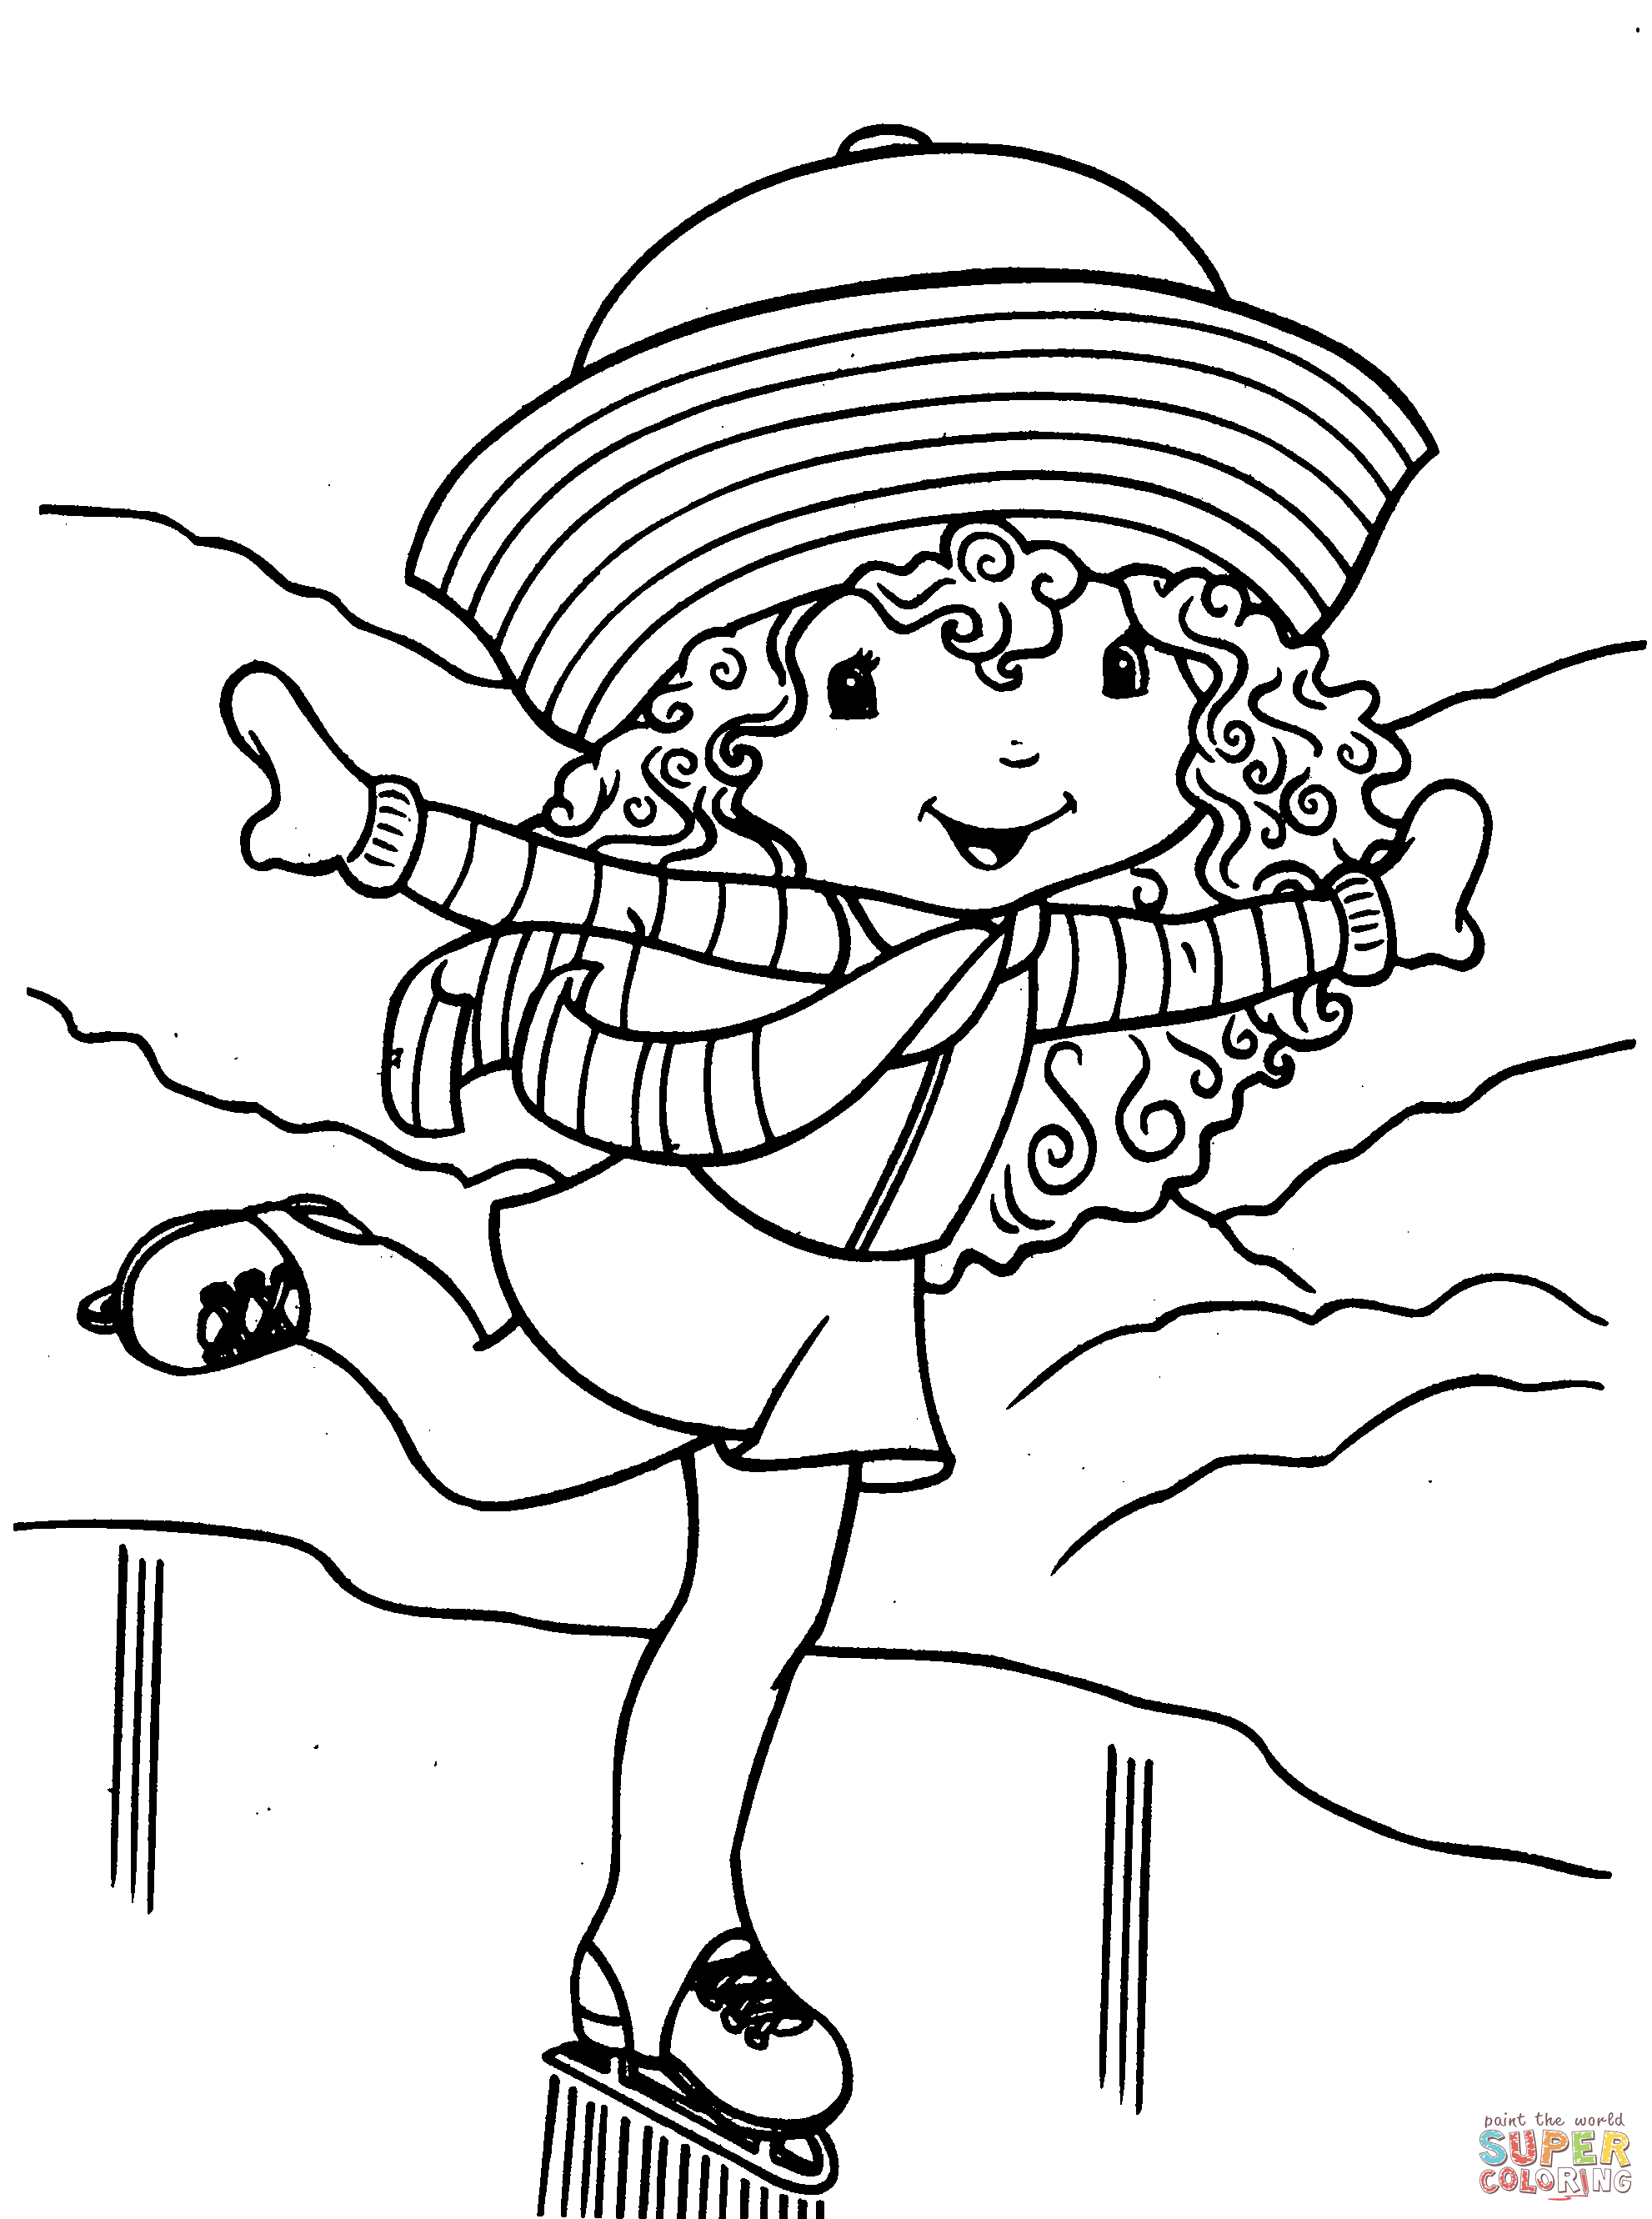 coloring pages of strawberry shortcake and friends strawberry shortcake want to be a cheerleader coloring pages shortcake strawberry and coloring of friends